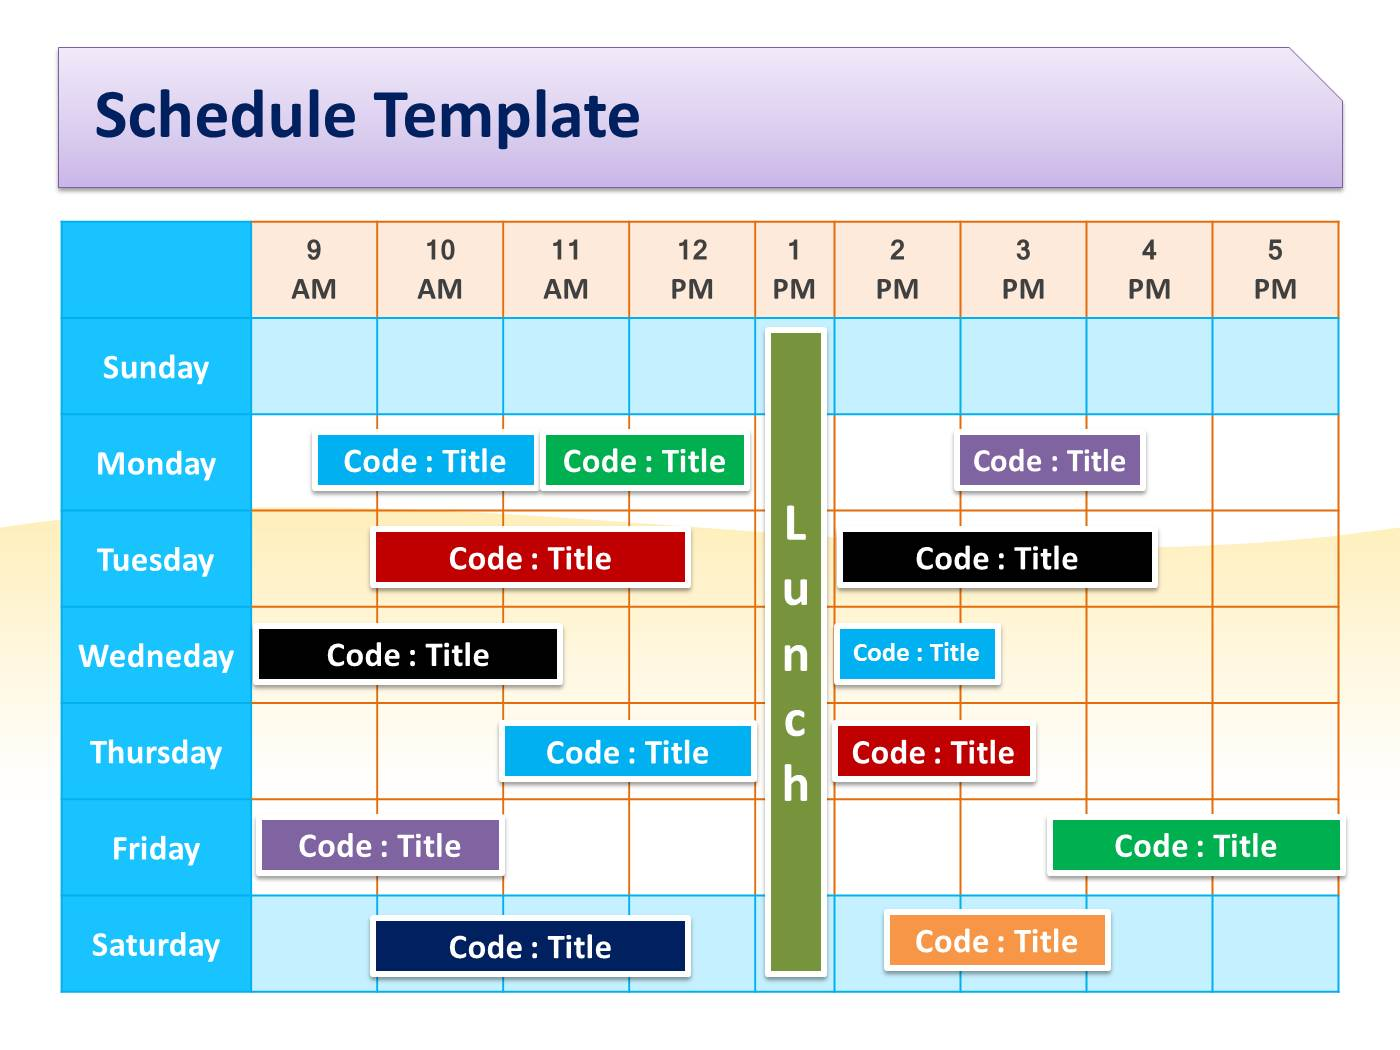 schedule template for powerpoint.pptx powerpoint presentation ppt, Powerpoint Schedule Template, Powerpoint templates